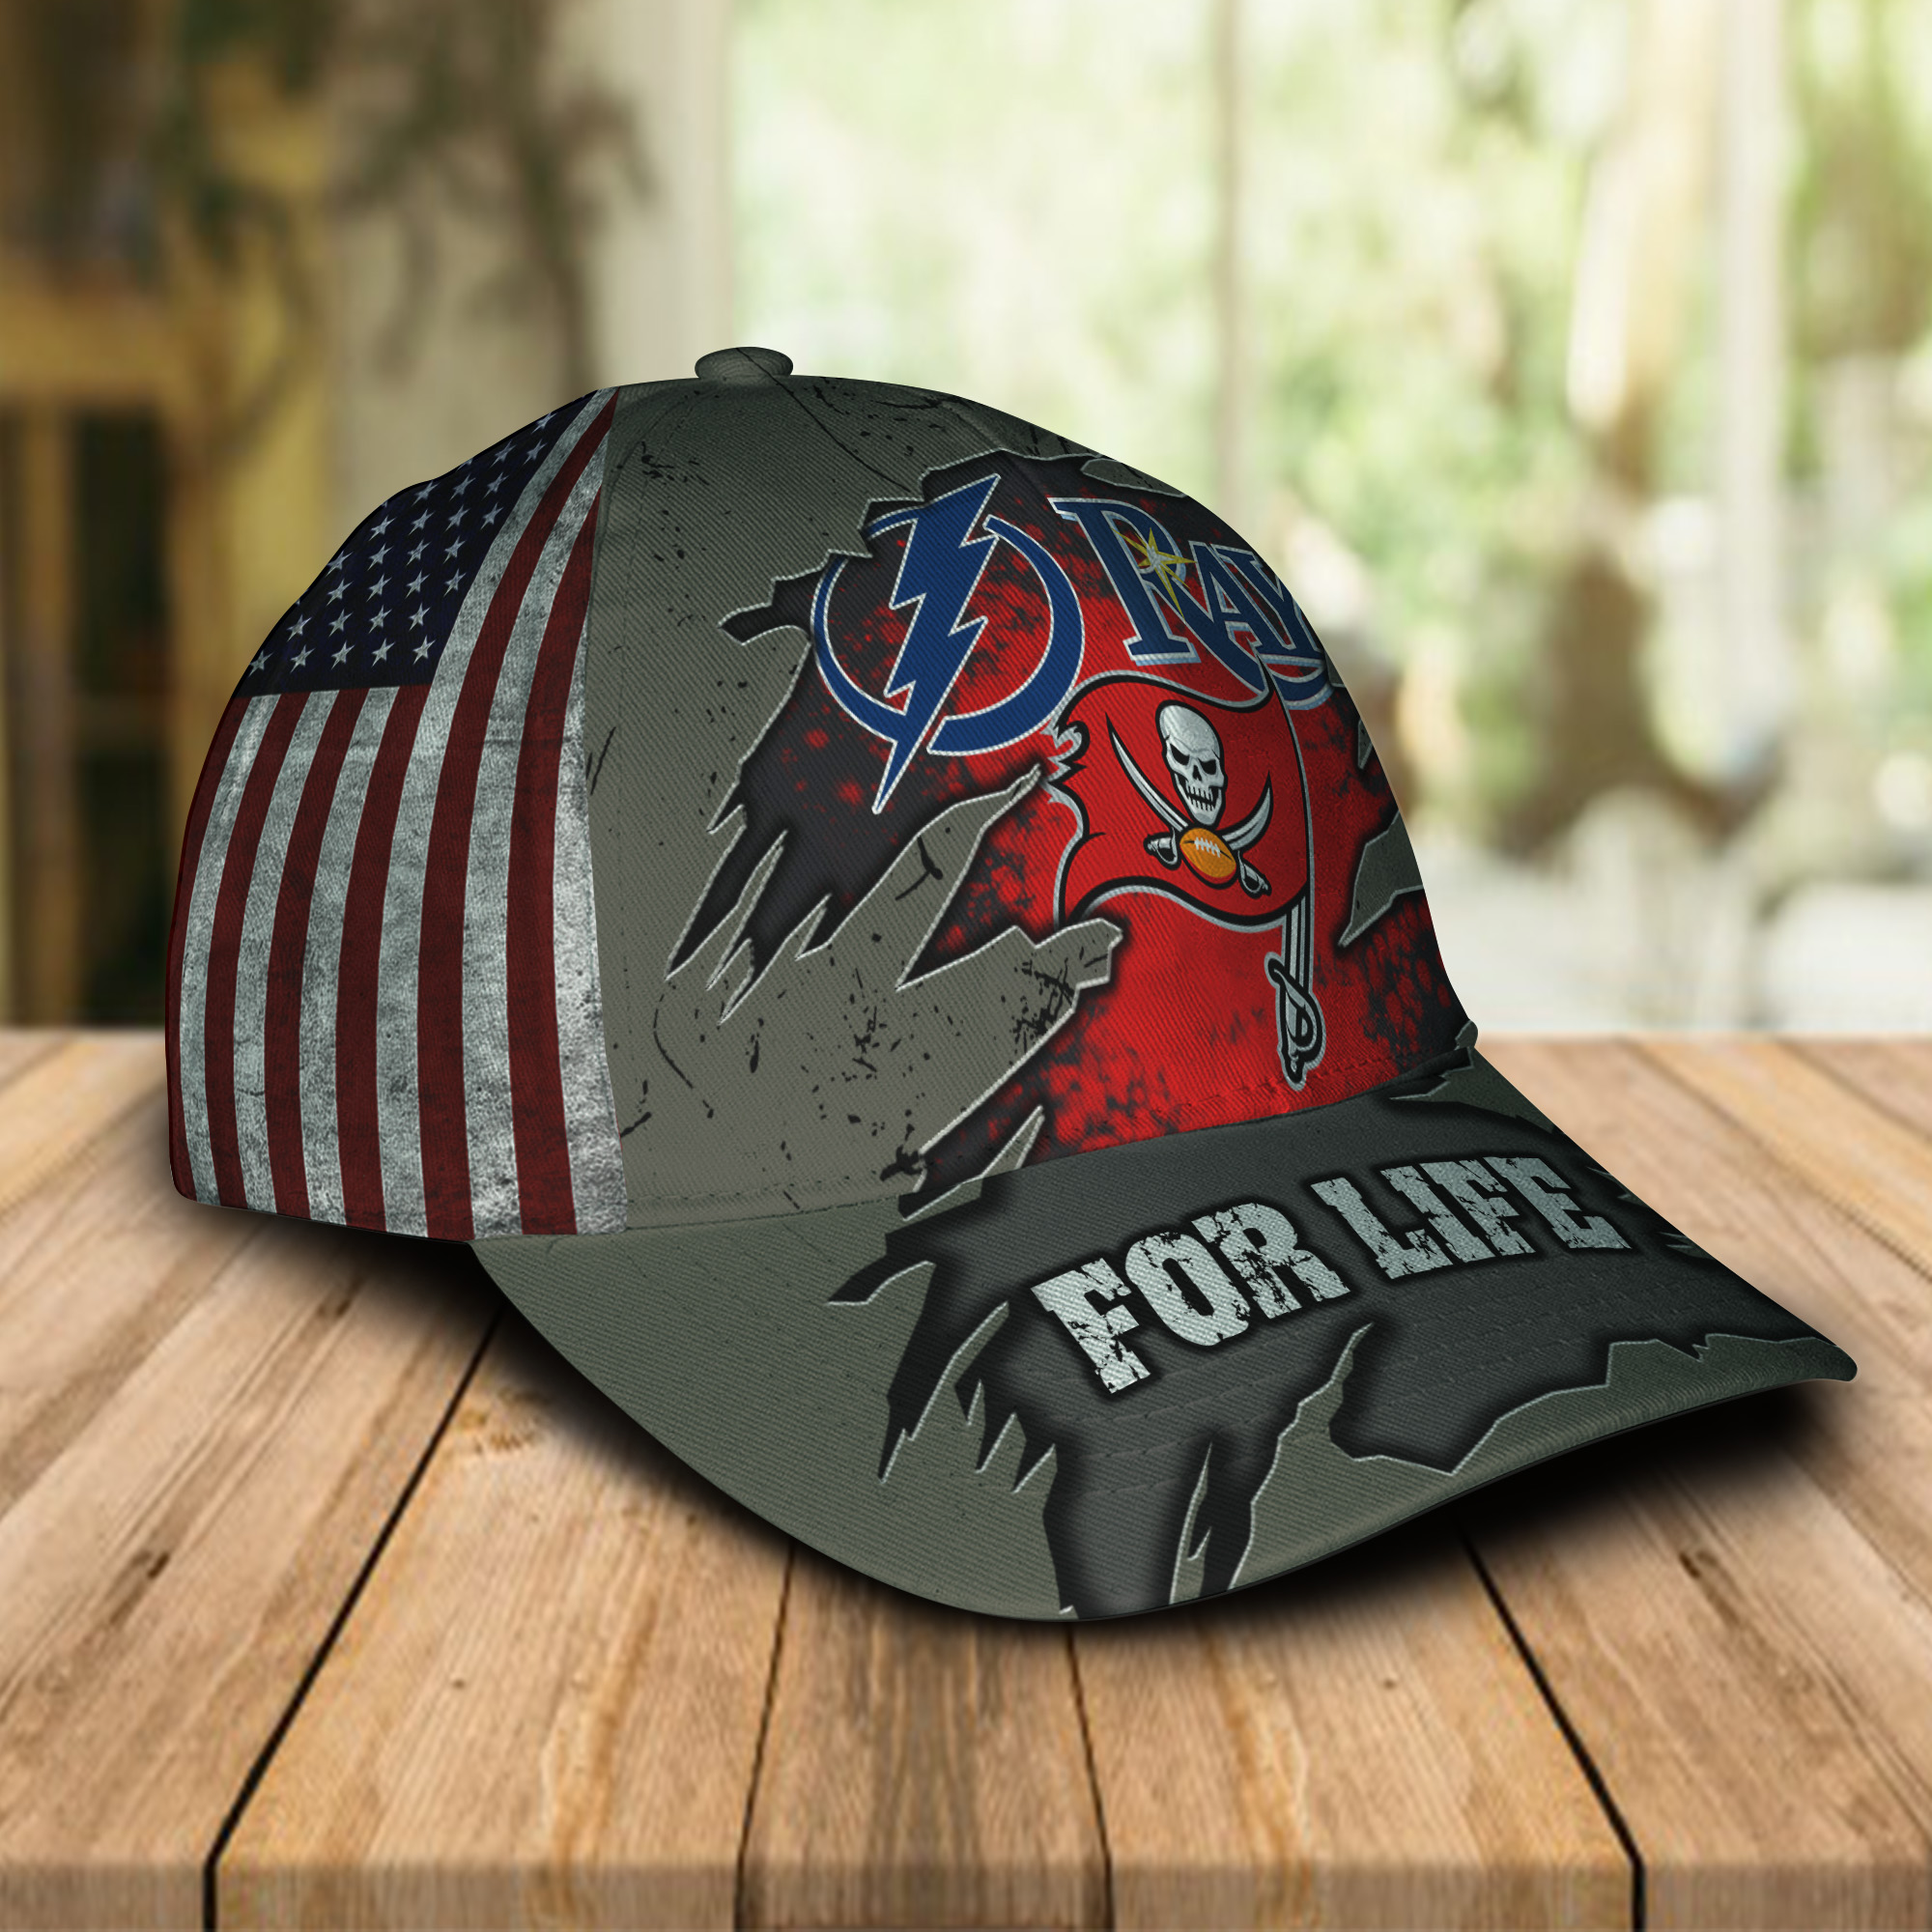 Tampa-Bay-sports-for-life-cap-hat-1